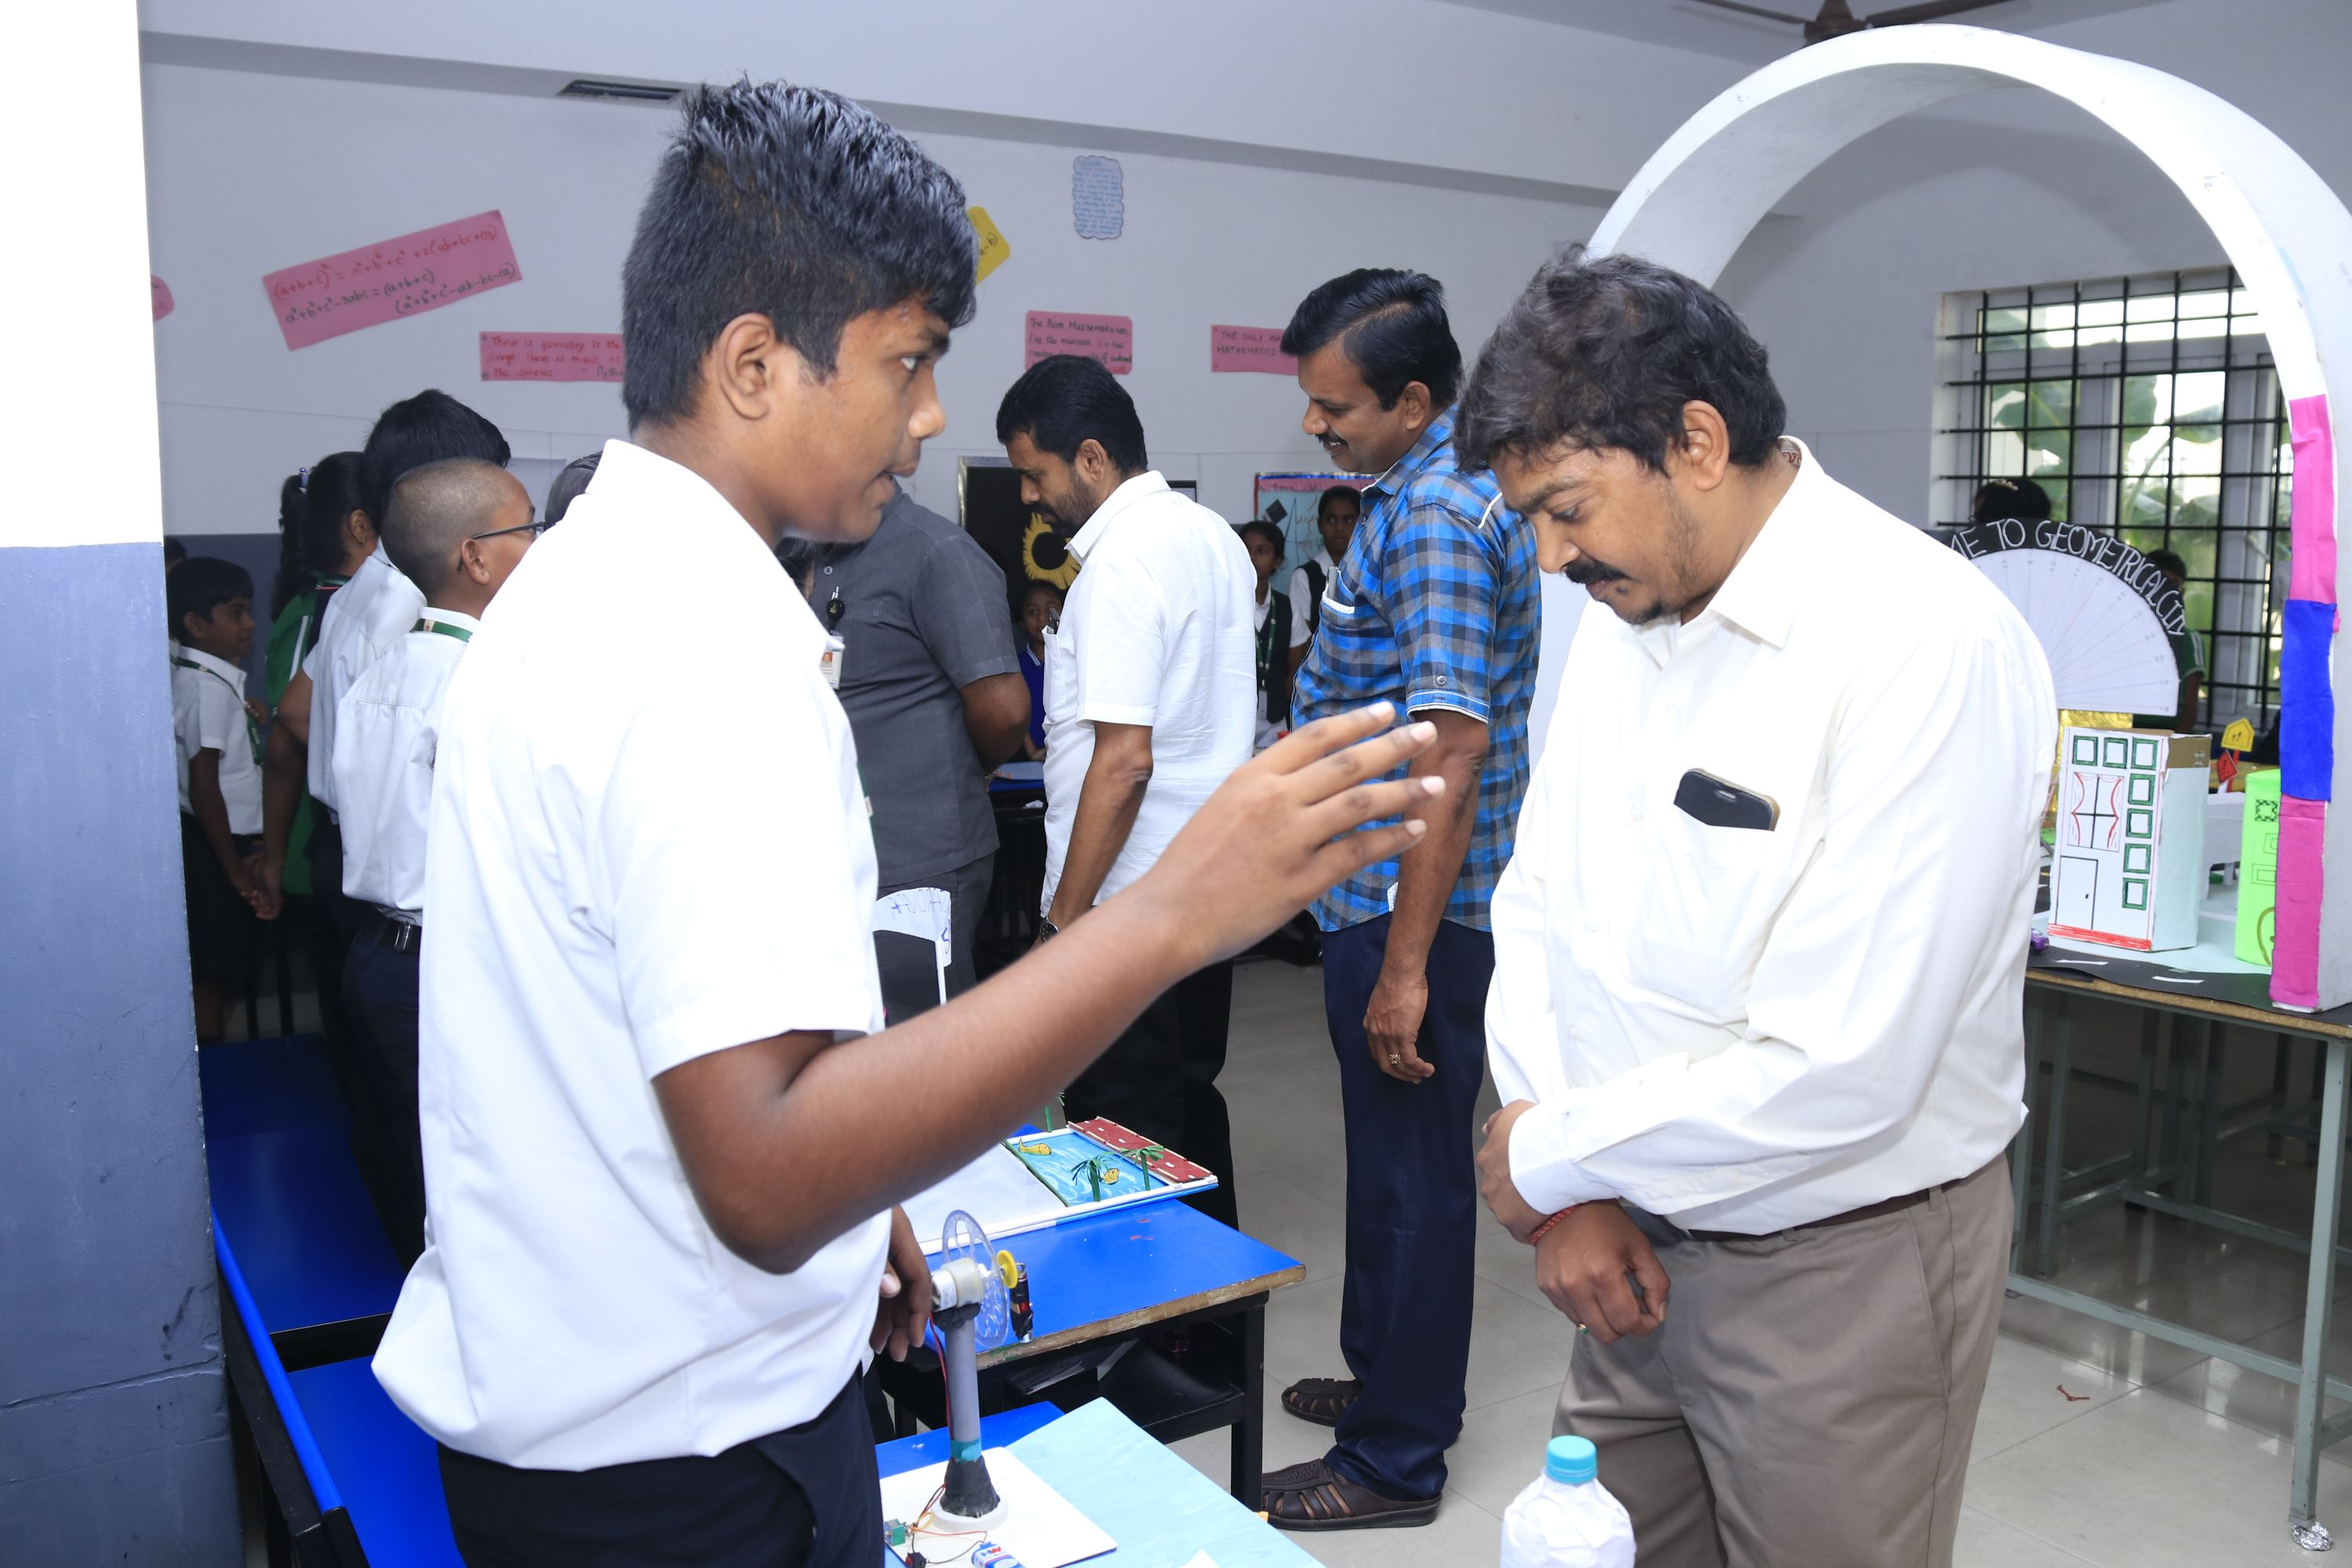 Science Expo 02.11.19